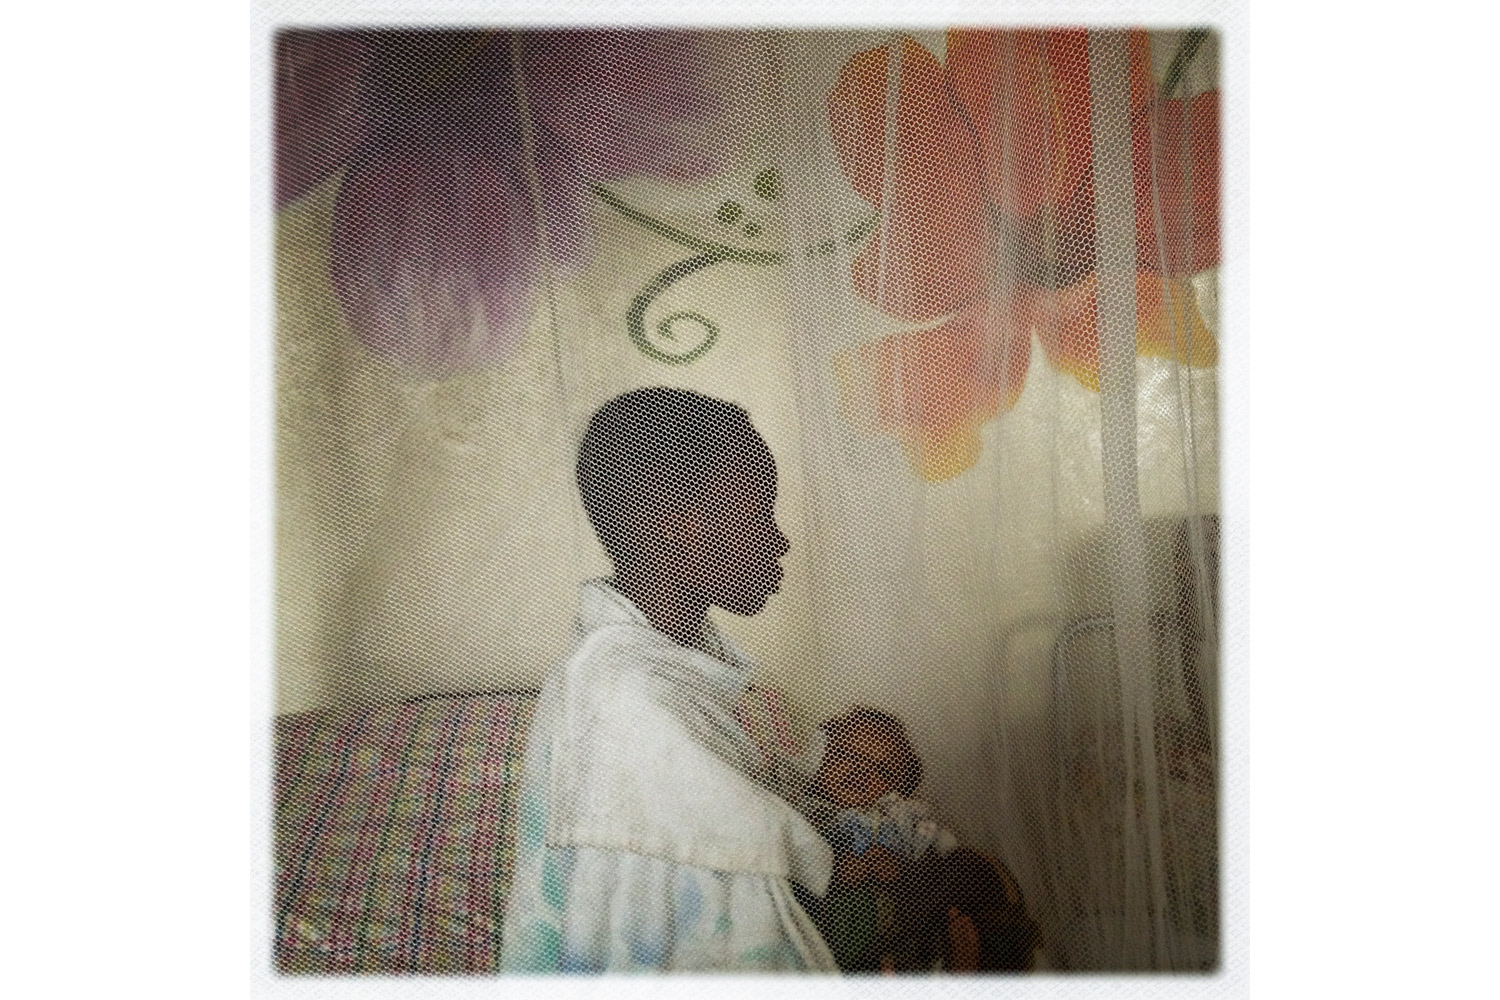 A teenage girl, who was gang-raped by three militia men, sits with her baby at a Heal Africa clinic in Goma. Control over the mines, and the income they provide, has fueled conflicts in the area for decades, including violence against women.